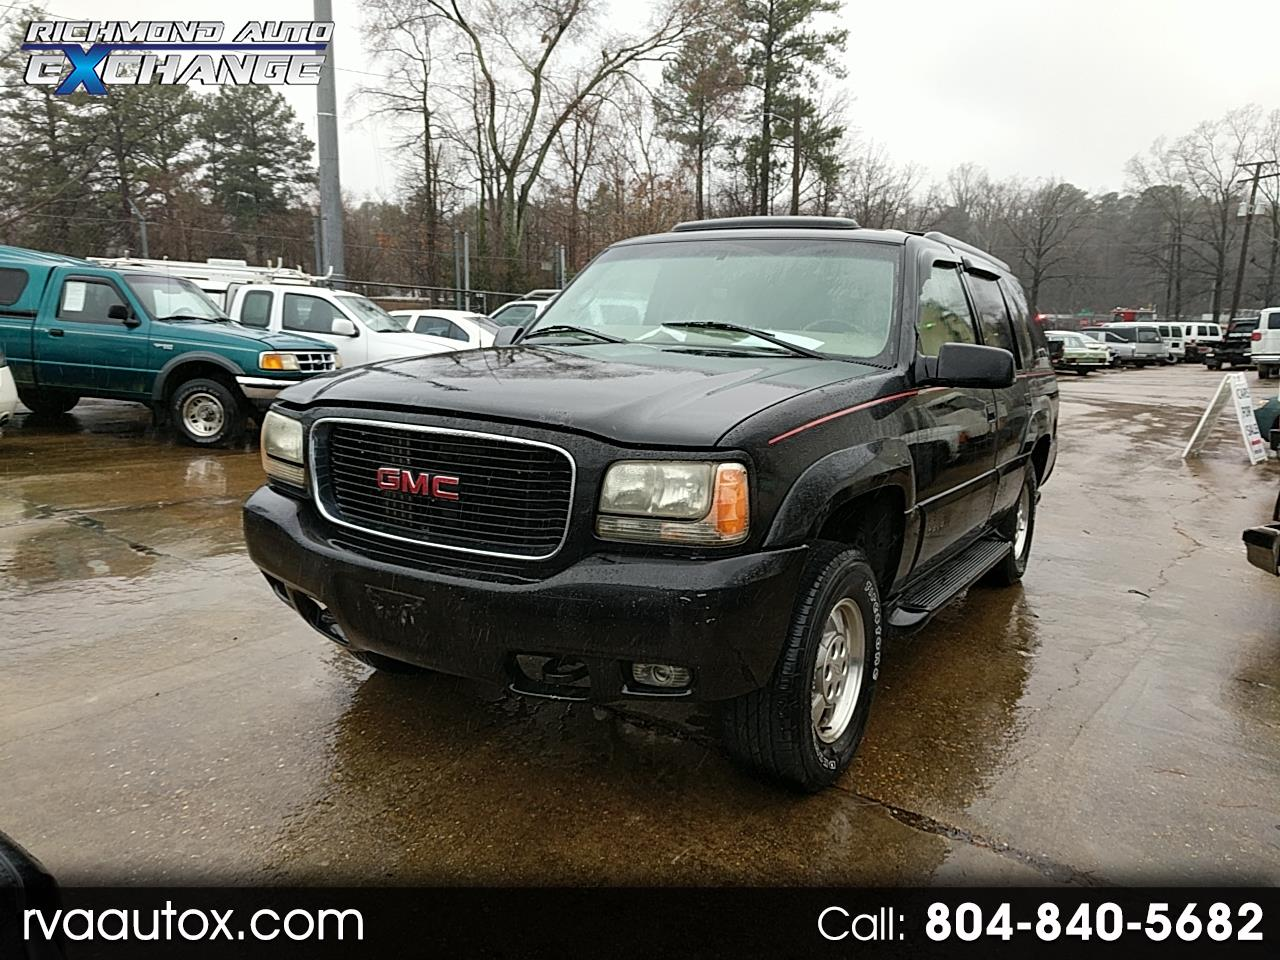 2000 GMC Yukon Denali Base